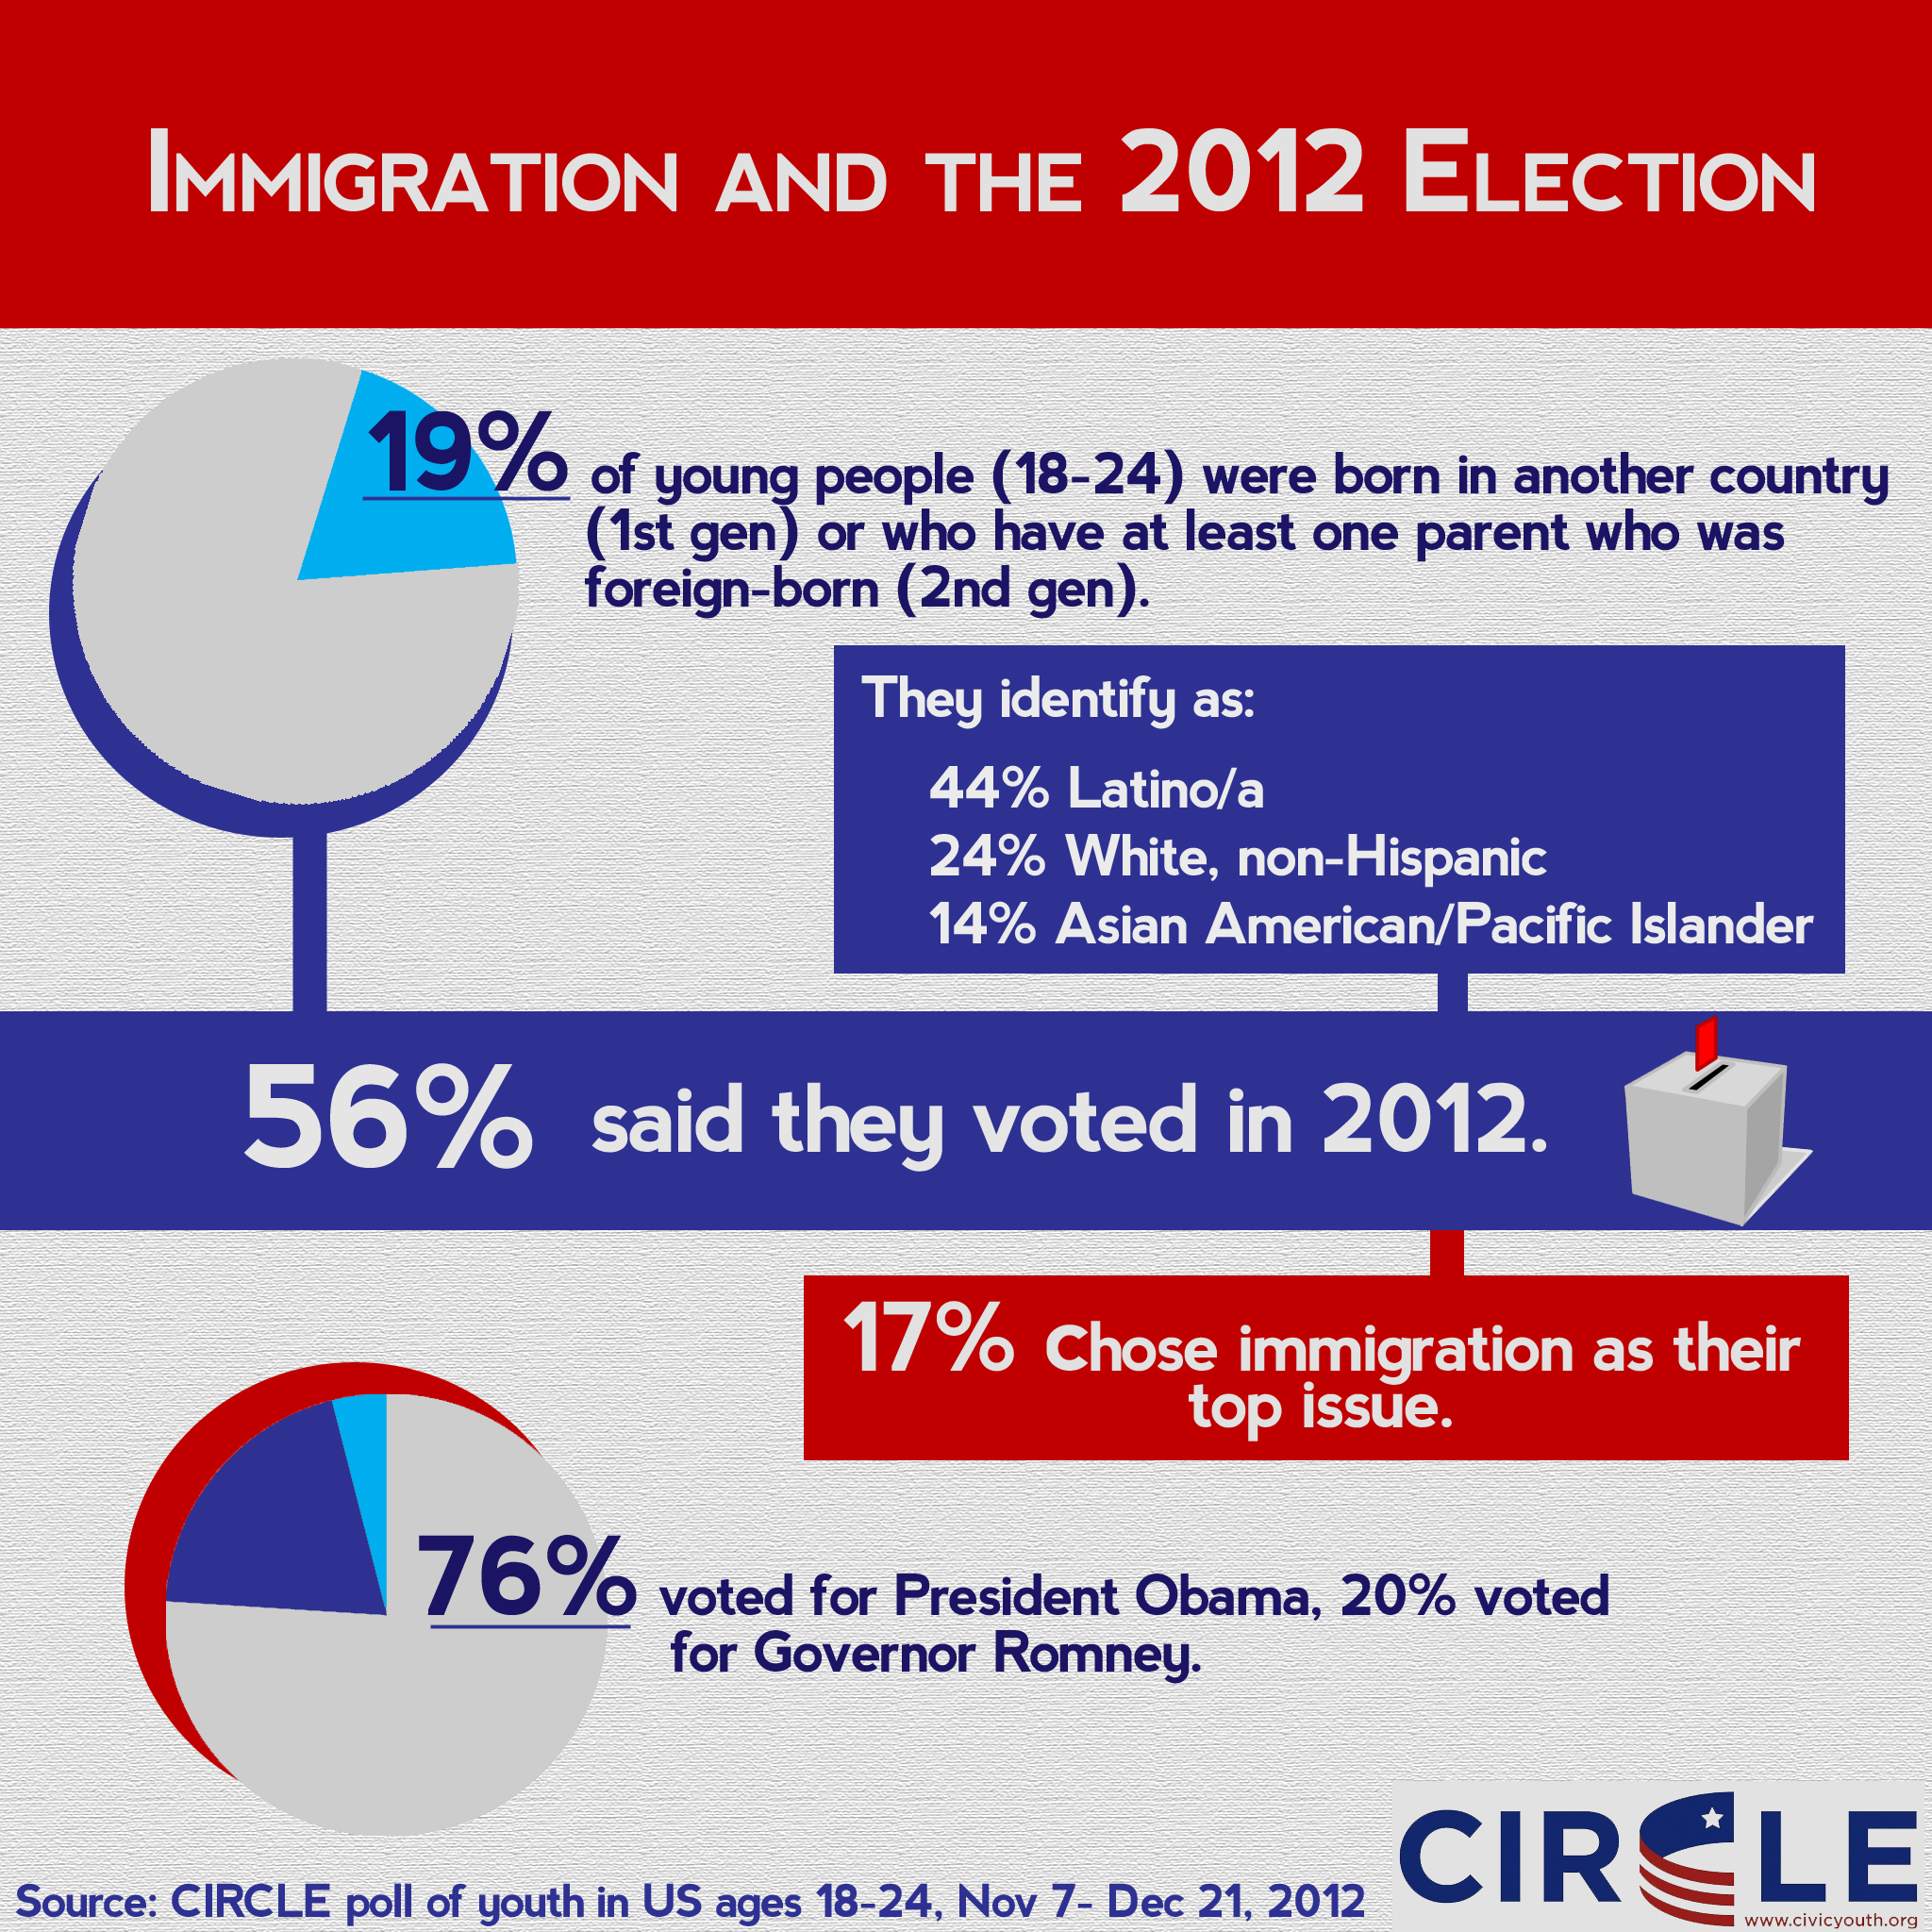 Infographic of immigration-related issues in the 2012 election